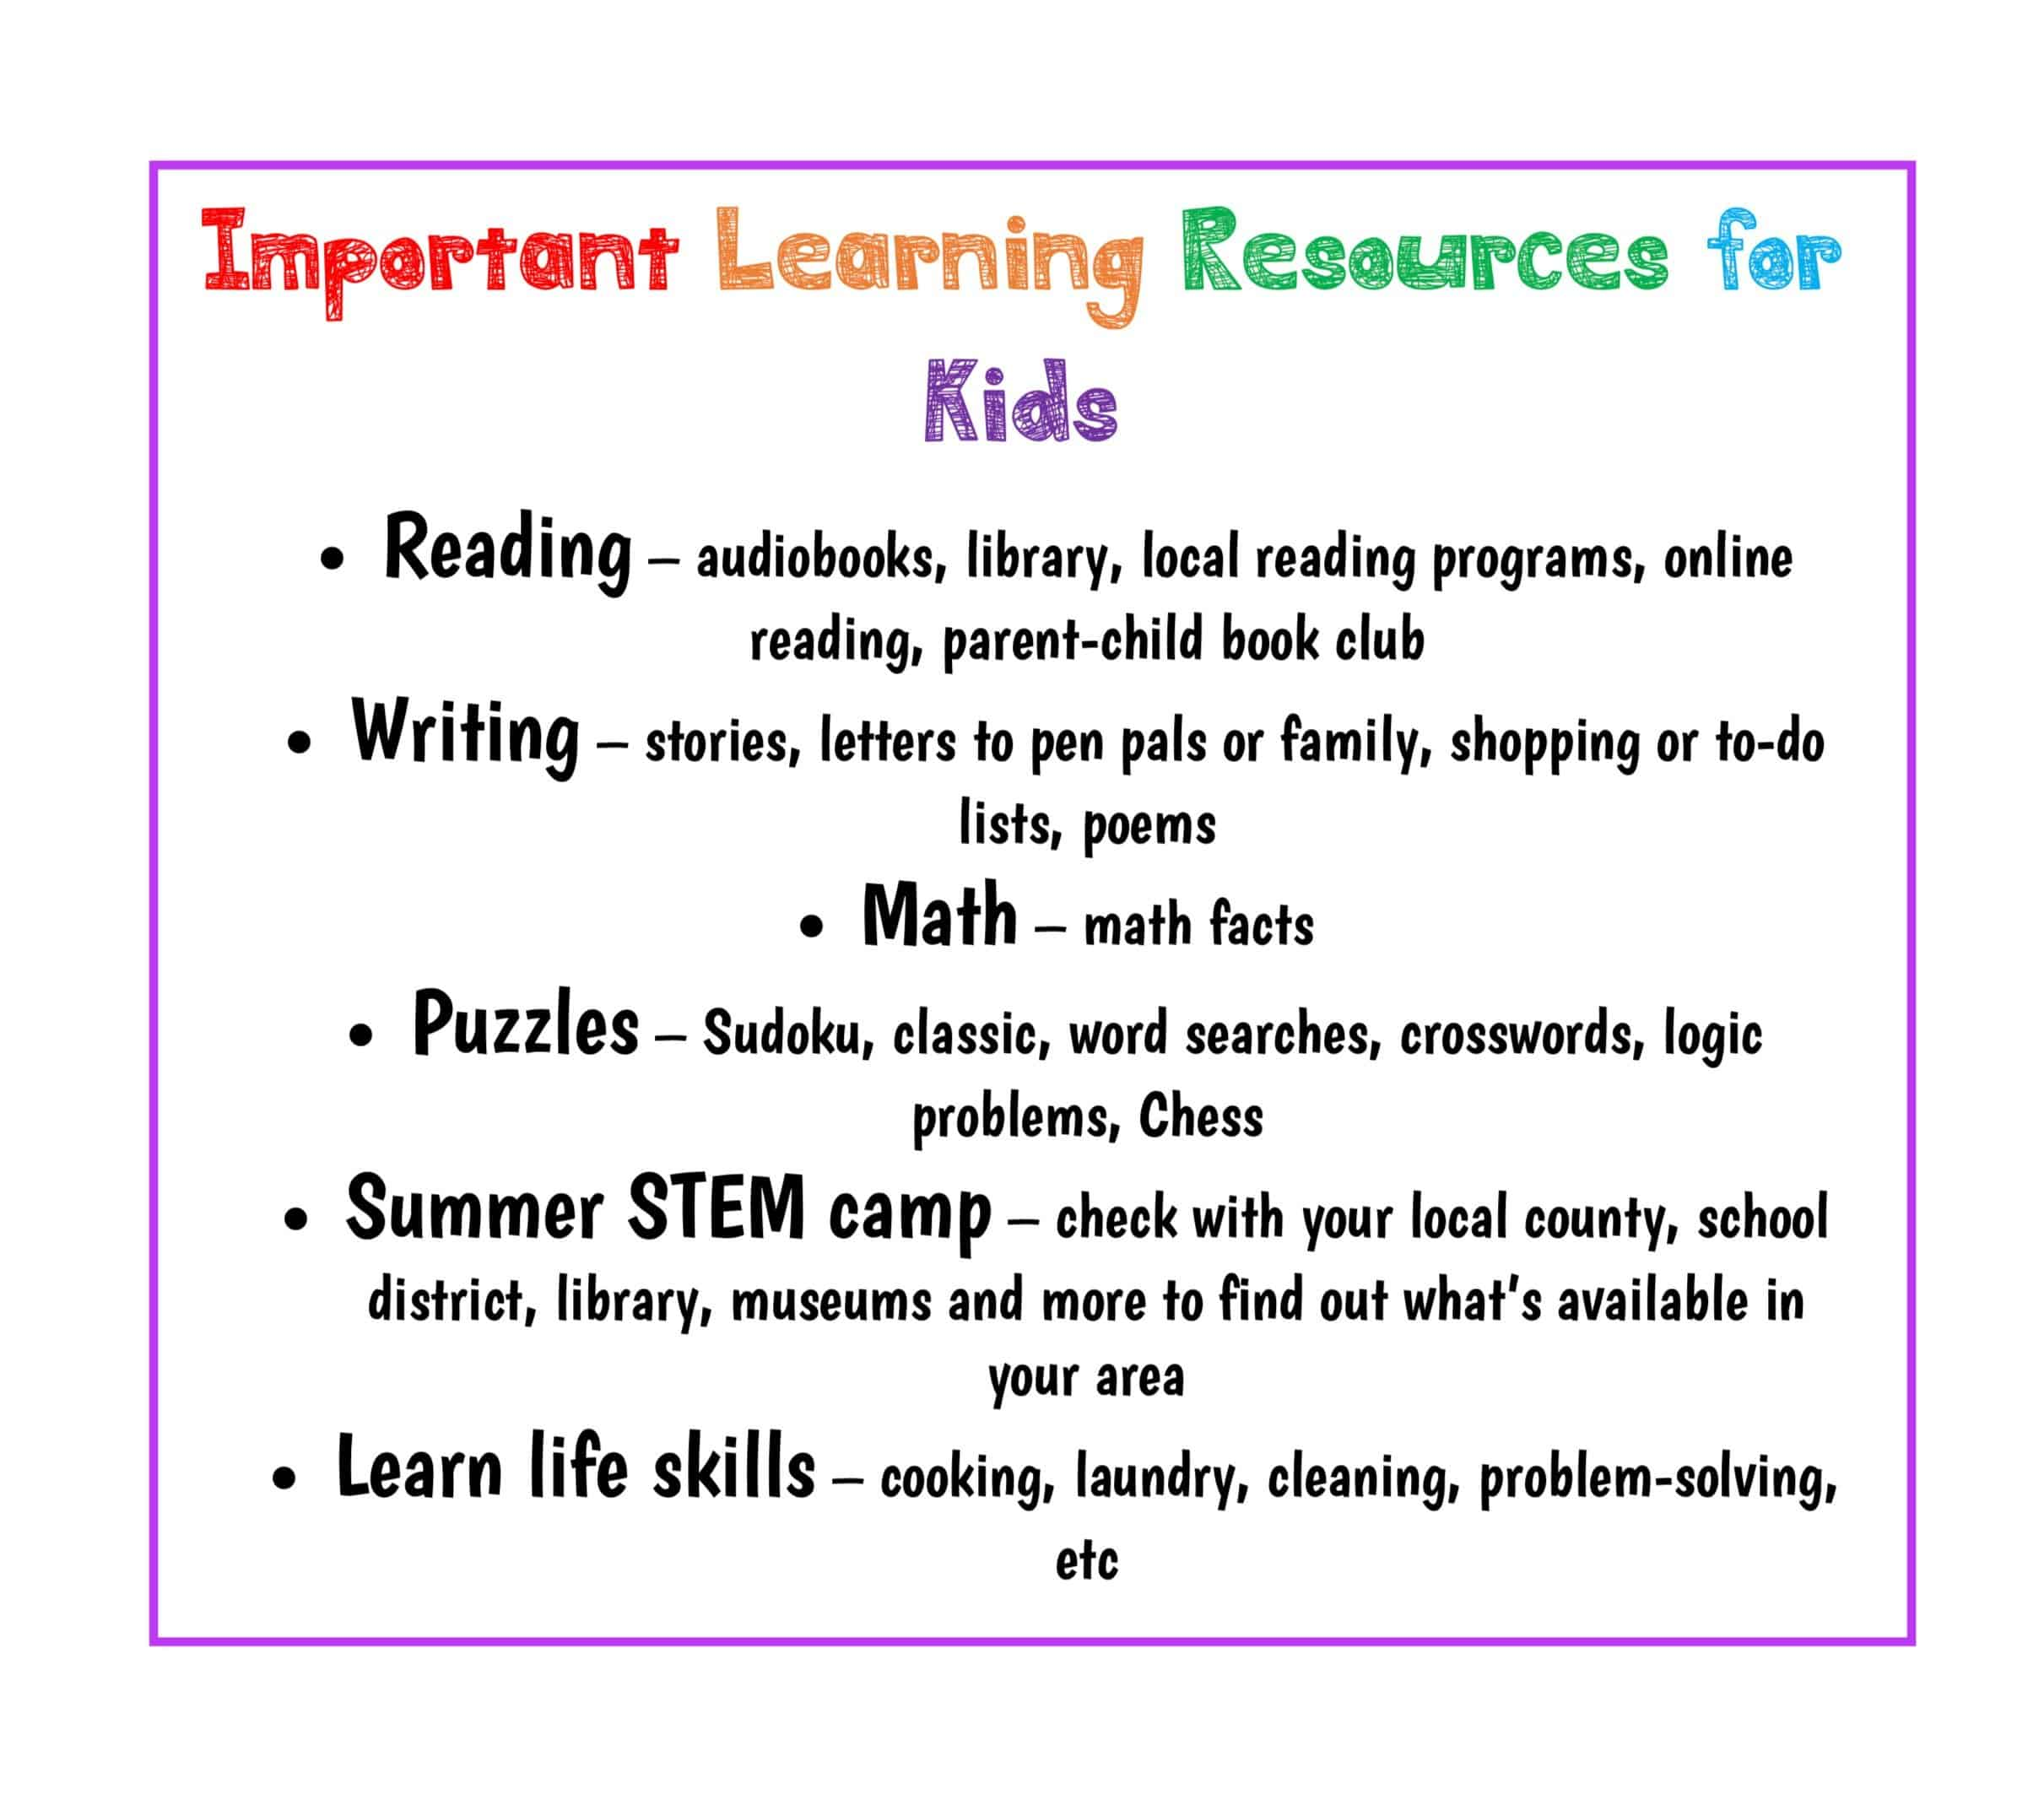 Learning resources for kids